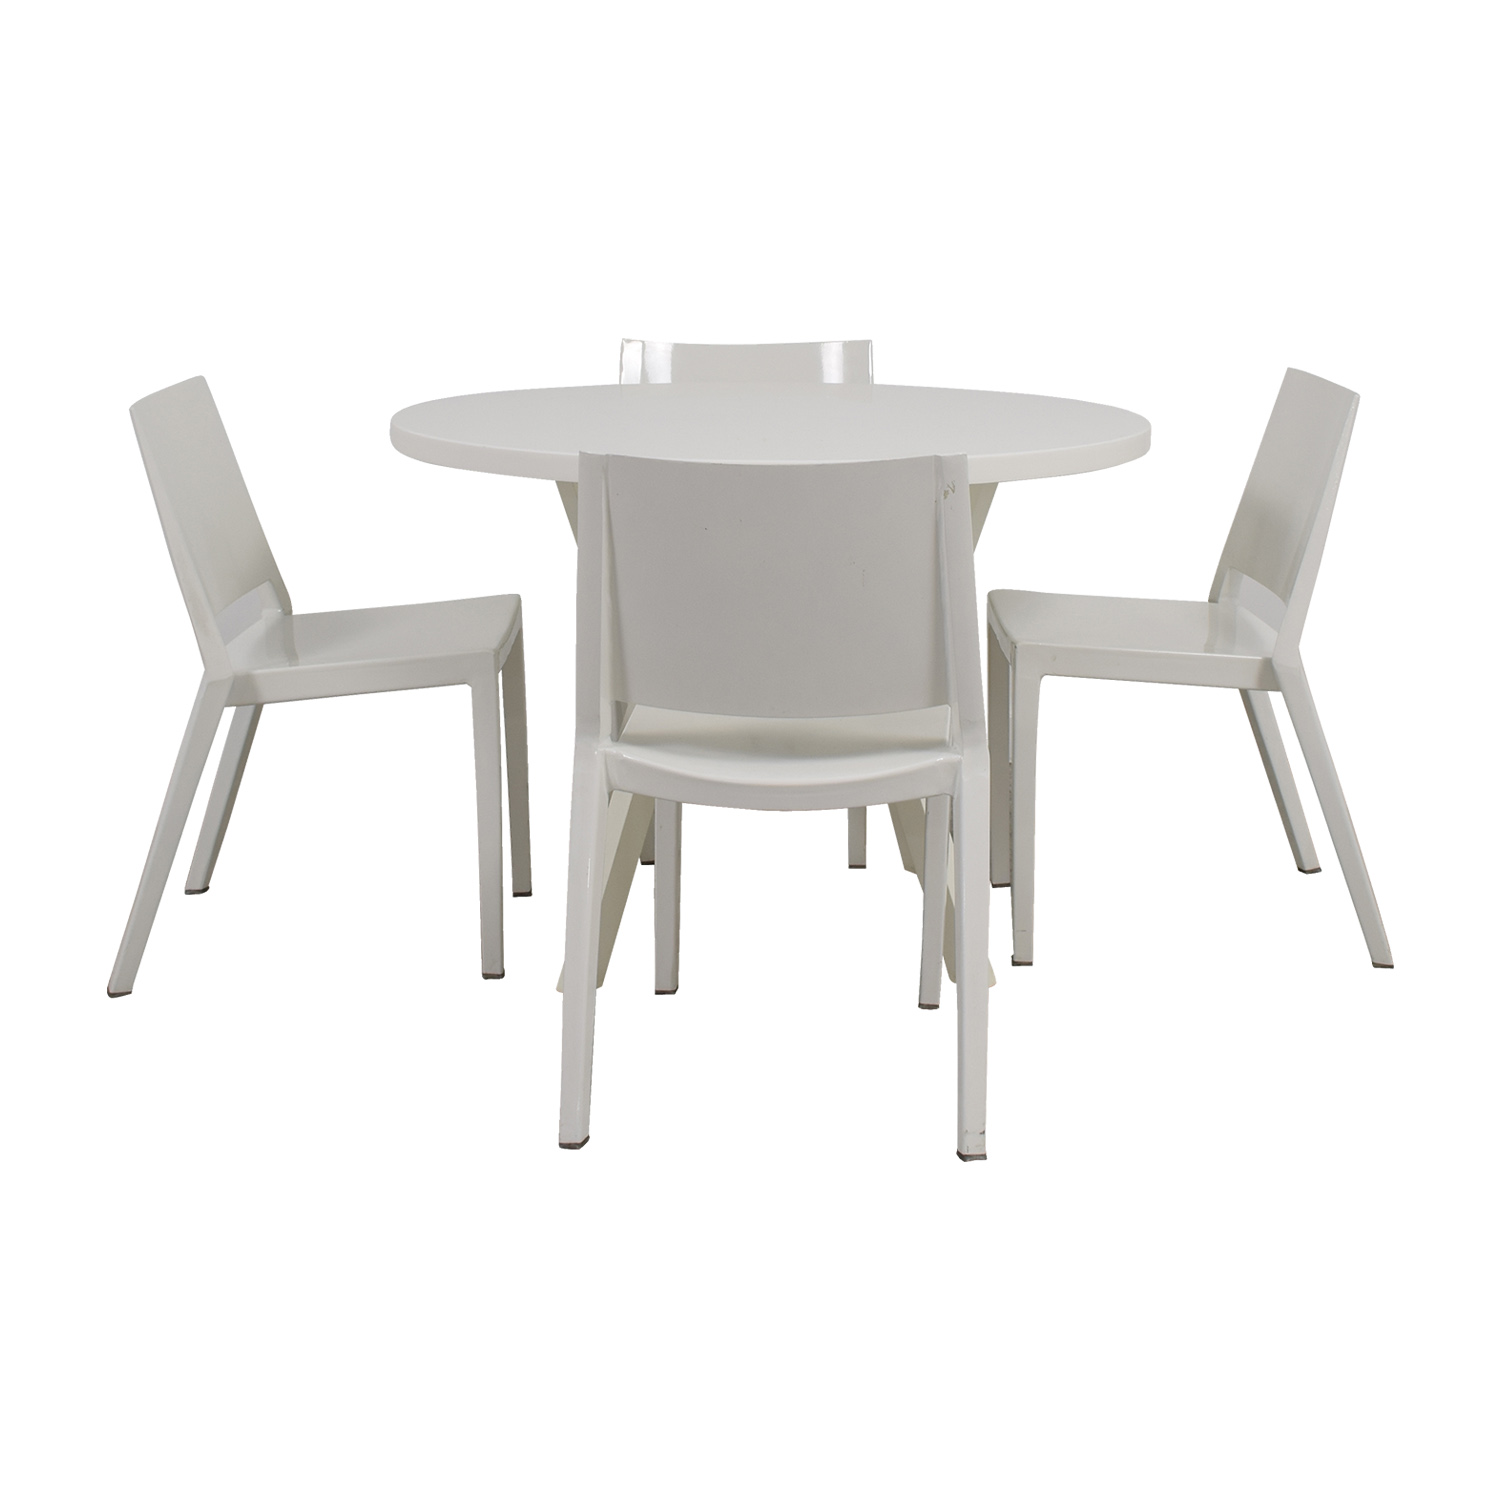 shop Crate & Barrel Crate & Barrel Round White Dining Set online